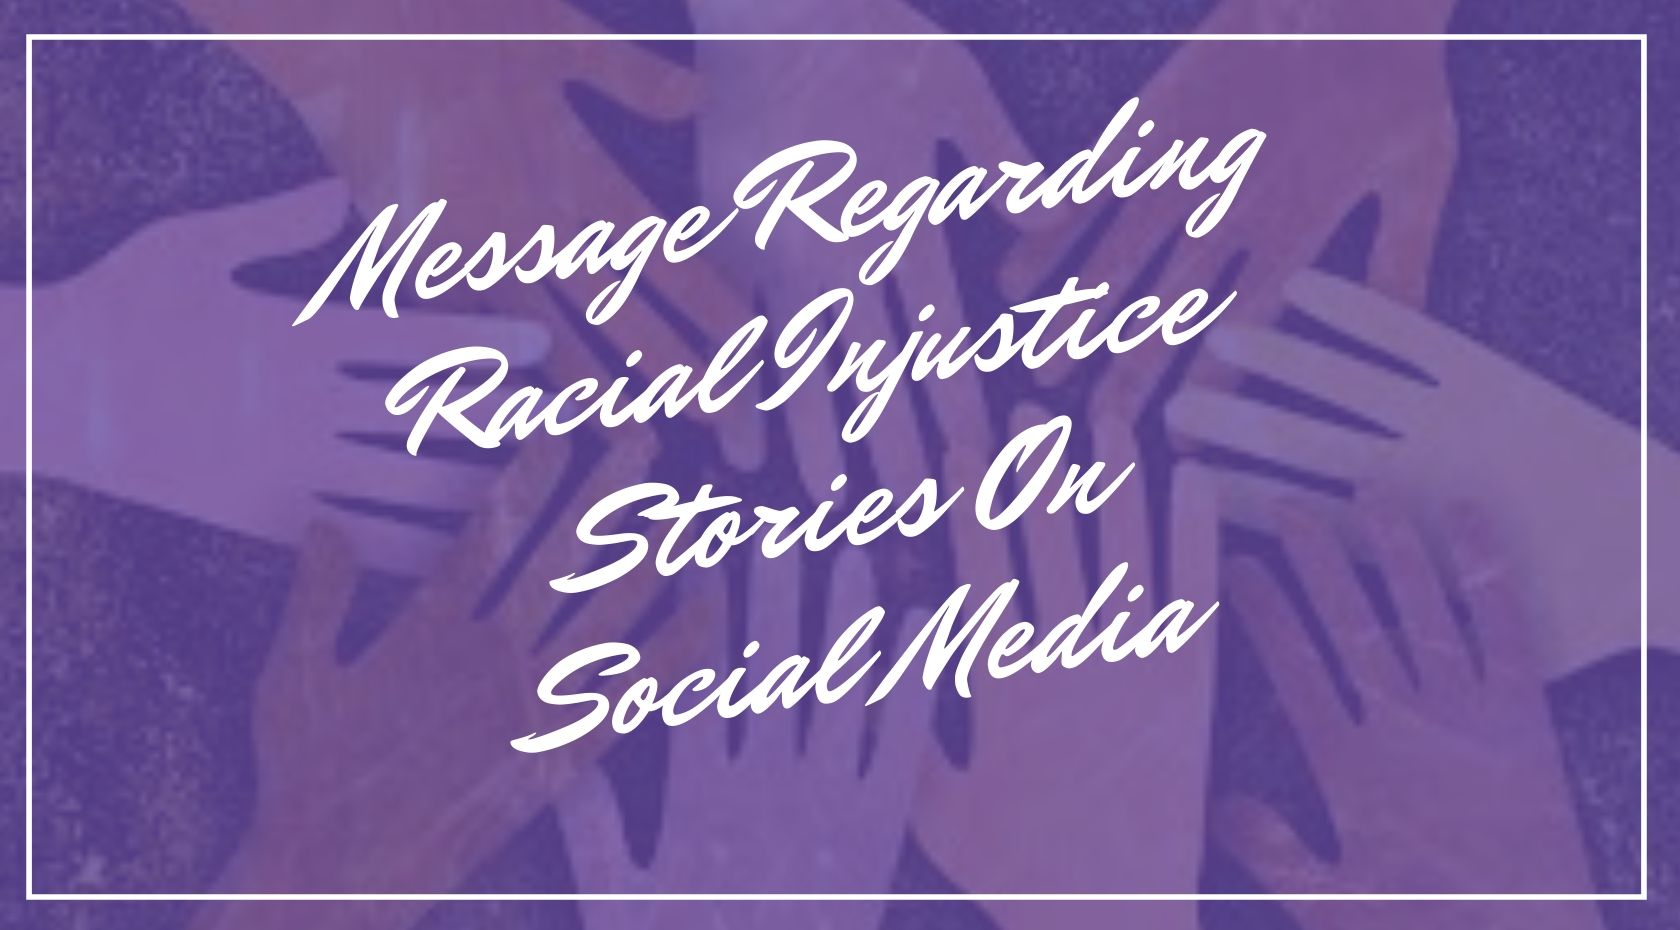 Racial Injustice Message image